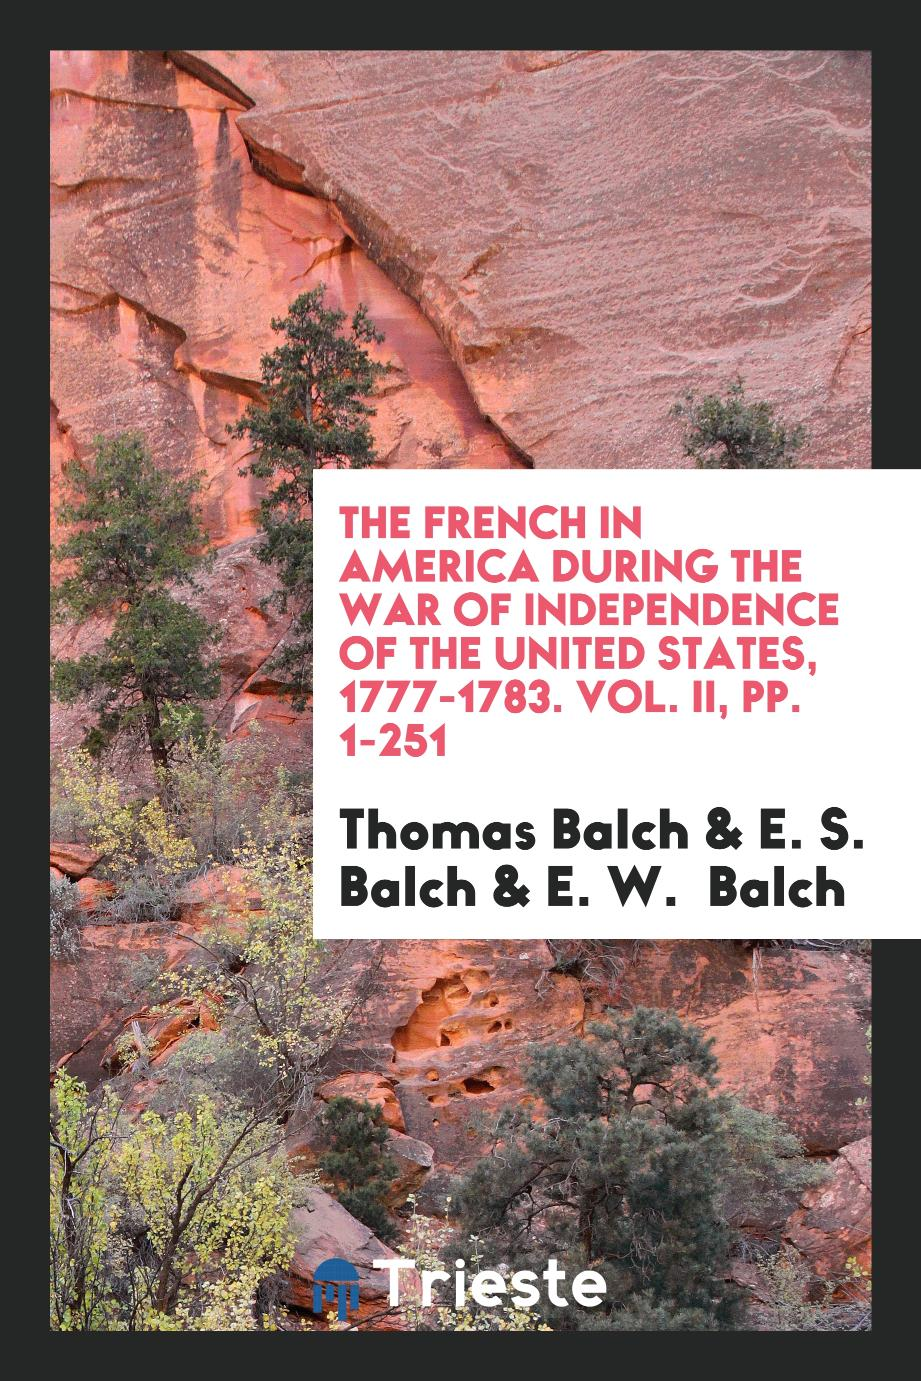 The French in America During the War of Independence of the United States, 1777-1783. Vol. II, pp. 1-251